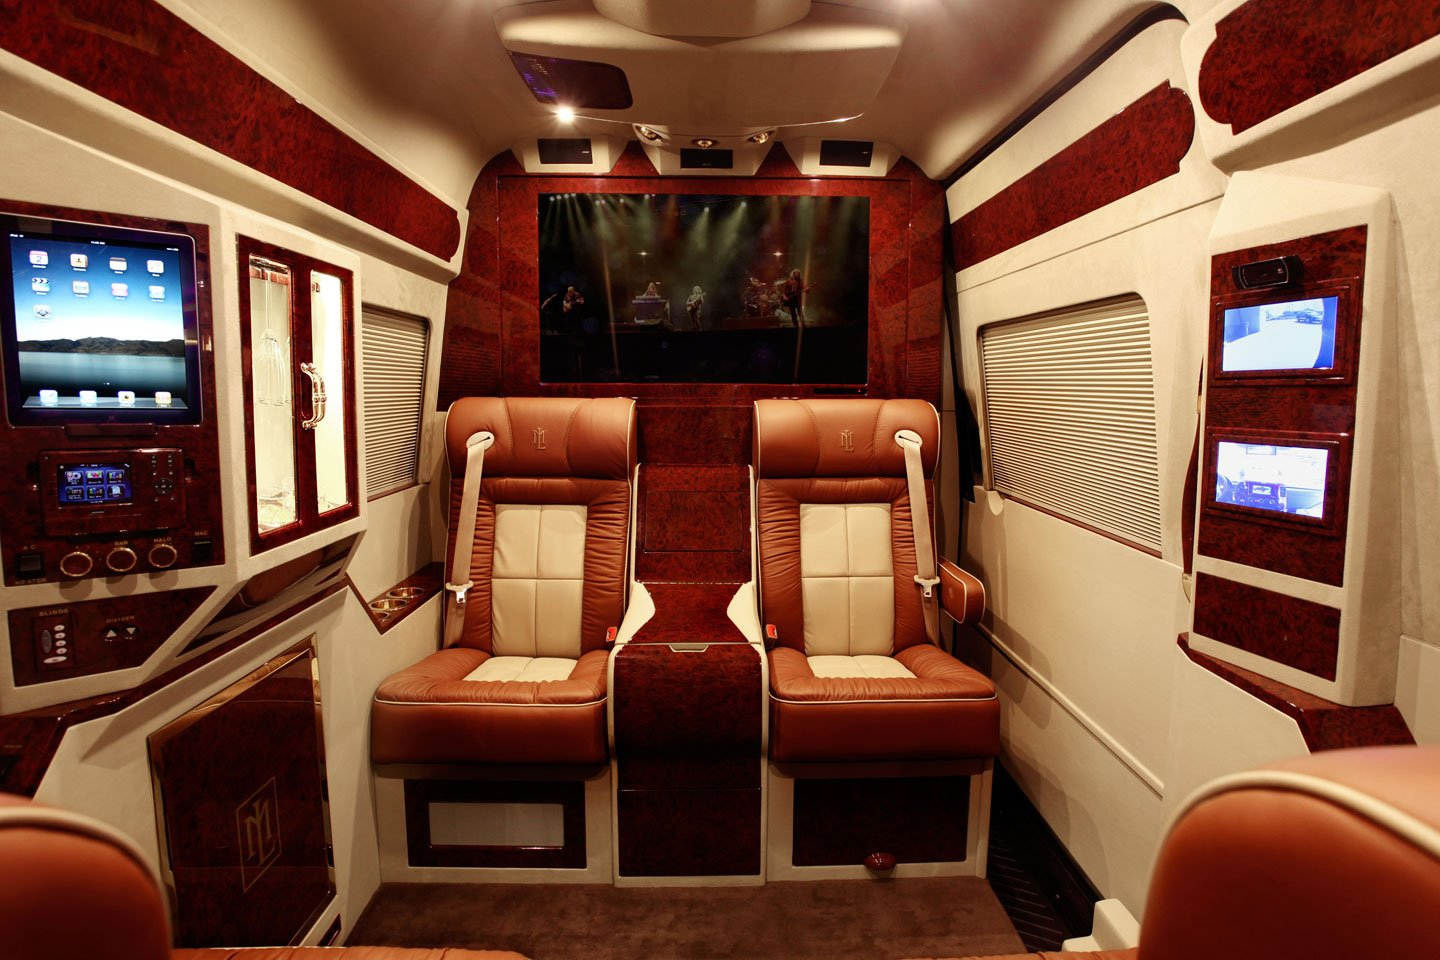 Mercedes Benz Sprinter L5 B Van Rides With A High Tech Luxe Bedroom Aboard